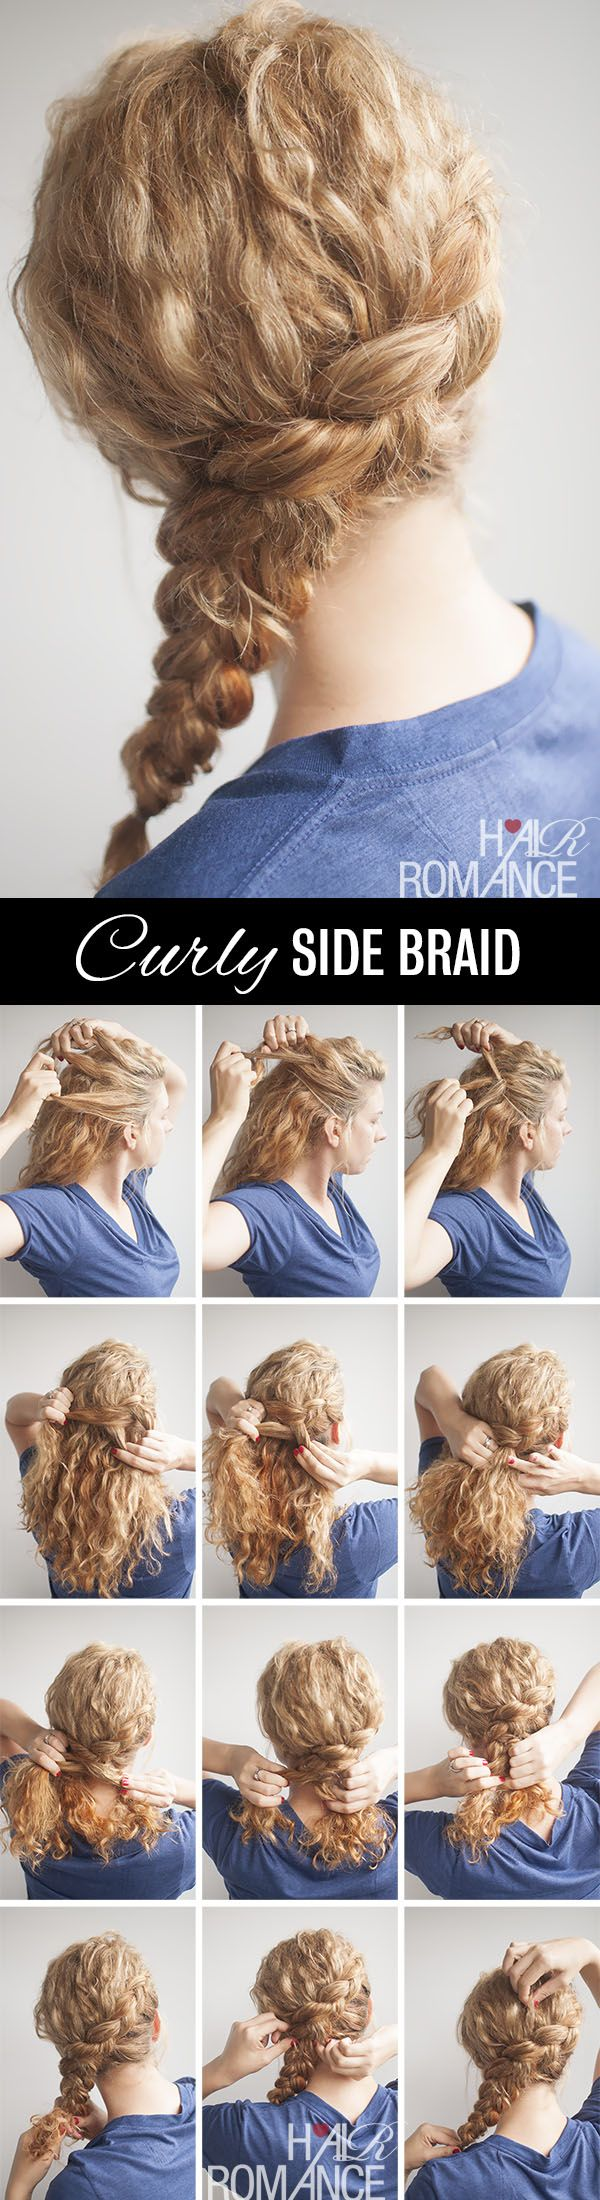 See more hairstyle ideas http://pinmakeuptips.com/what-are-the-10-biggest-hair-care-mistakes/